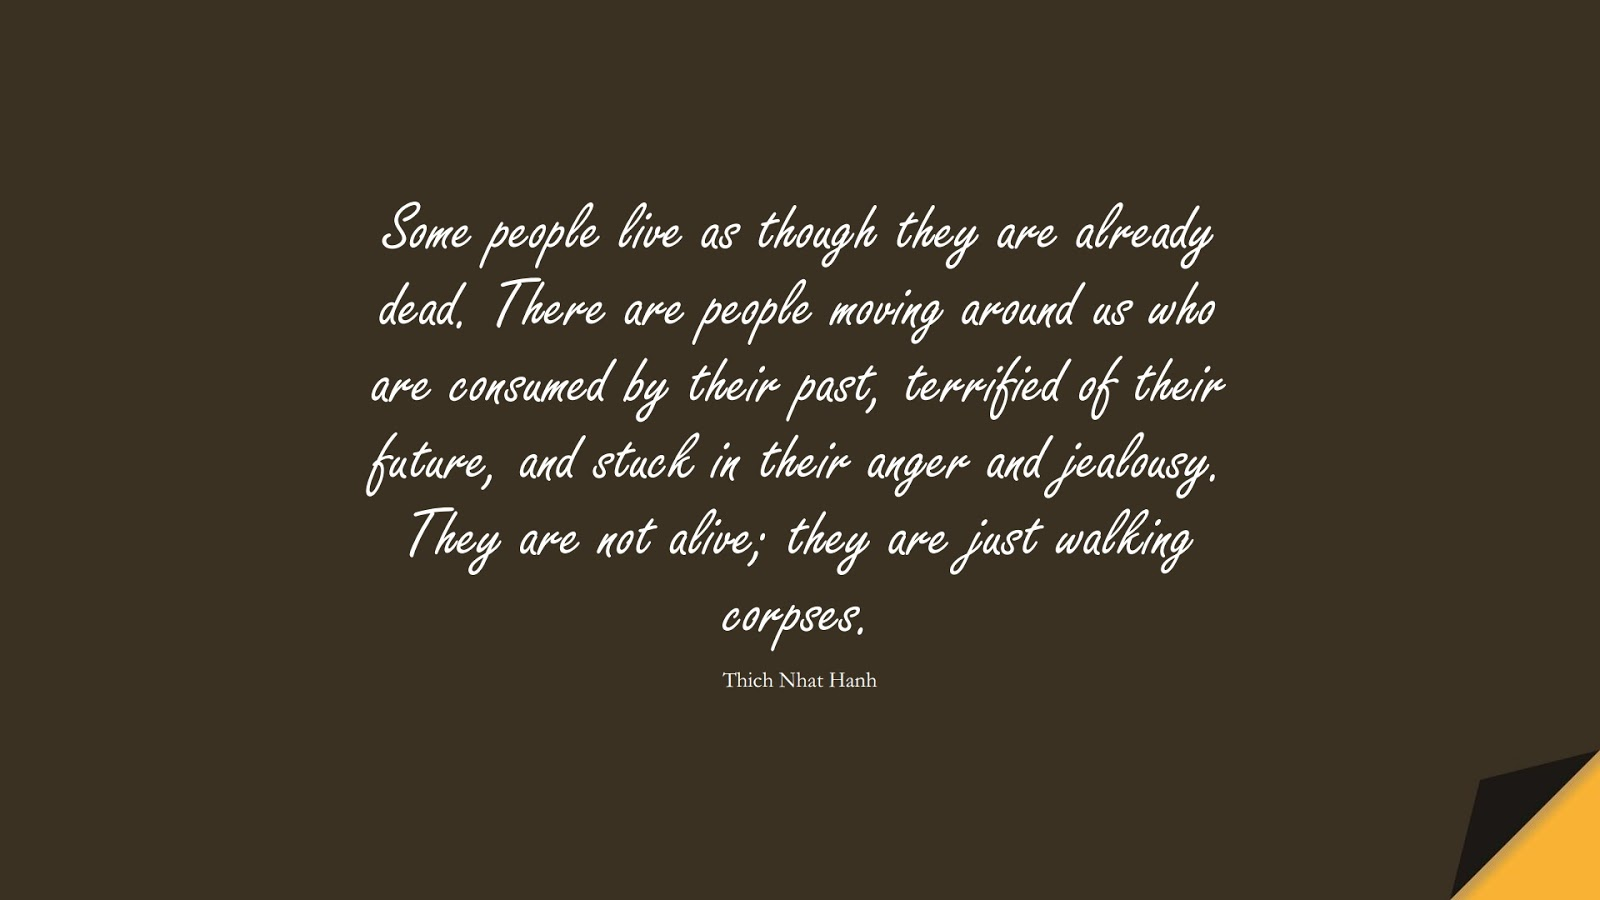 Some people live as though they are already dead. There are people moving around us who are consumed by their past, terrified of their future, and stuck in their anger and jealousy. They are not alive; they are just walking corpses. (Thich Nhat Hanh);  #StressQuotes